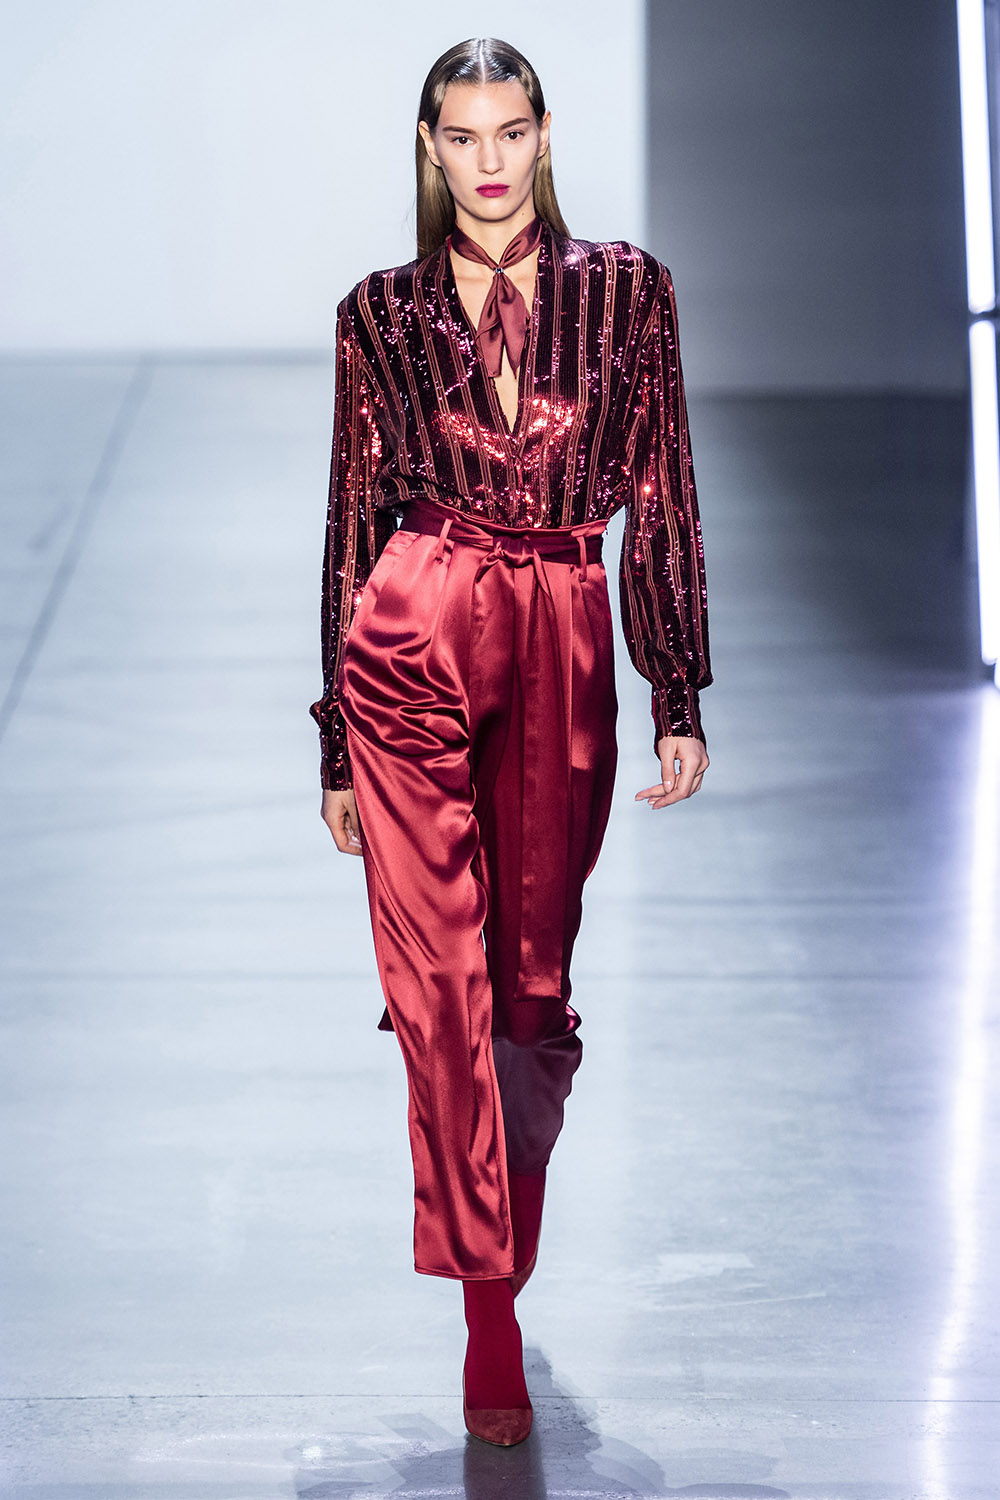 Best NYFW Looks I Sally LaPointe Fall 2019 Collection #NYFW #Fall2019 #FW19 #Runway